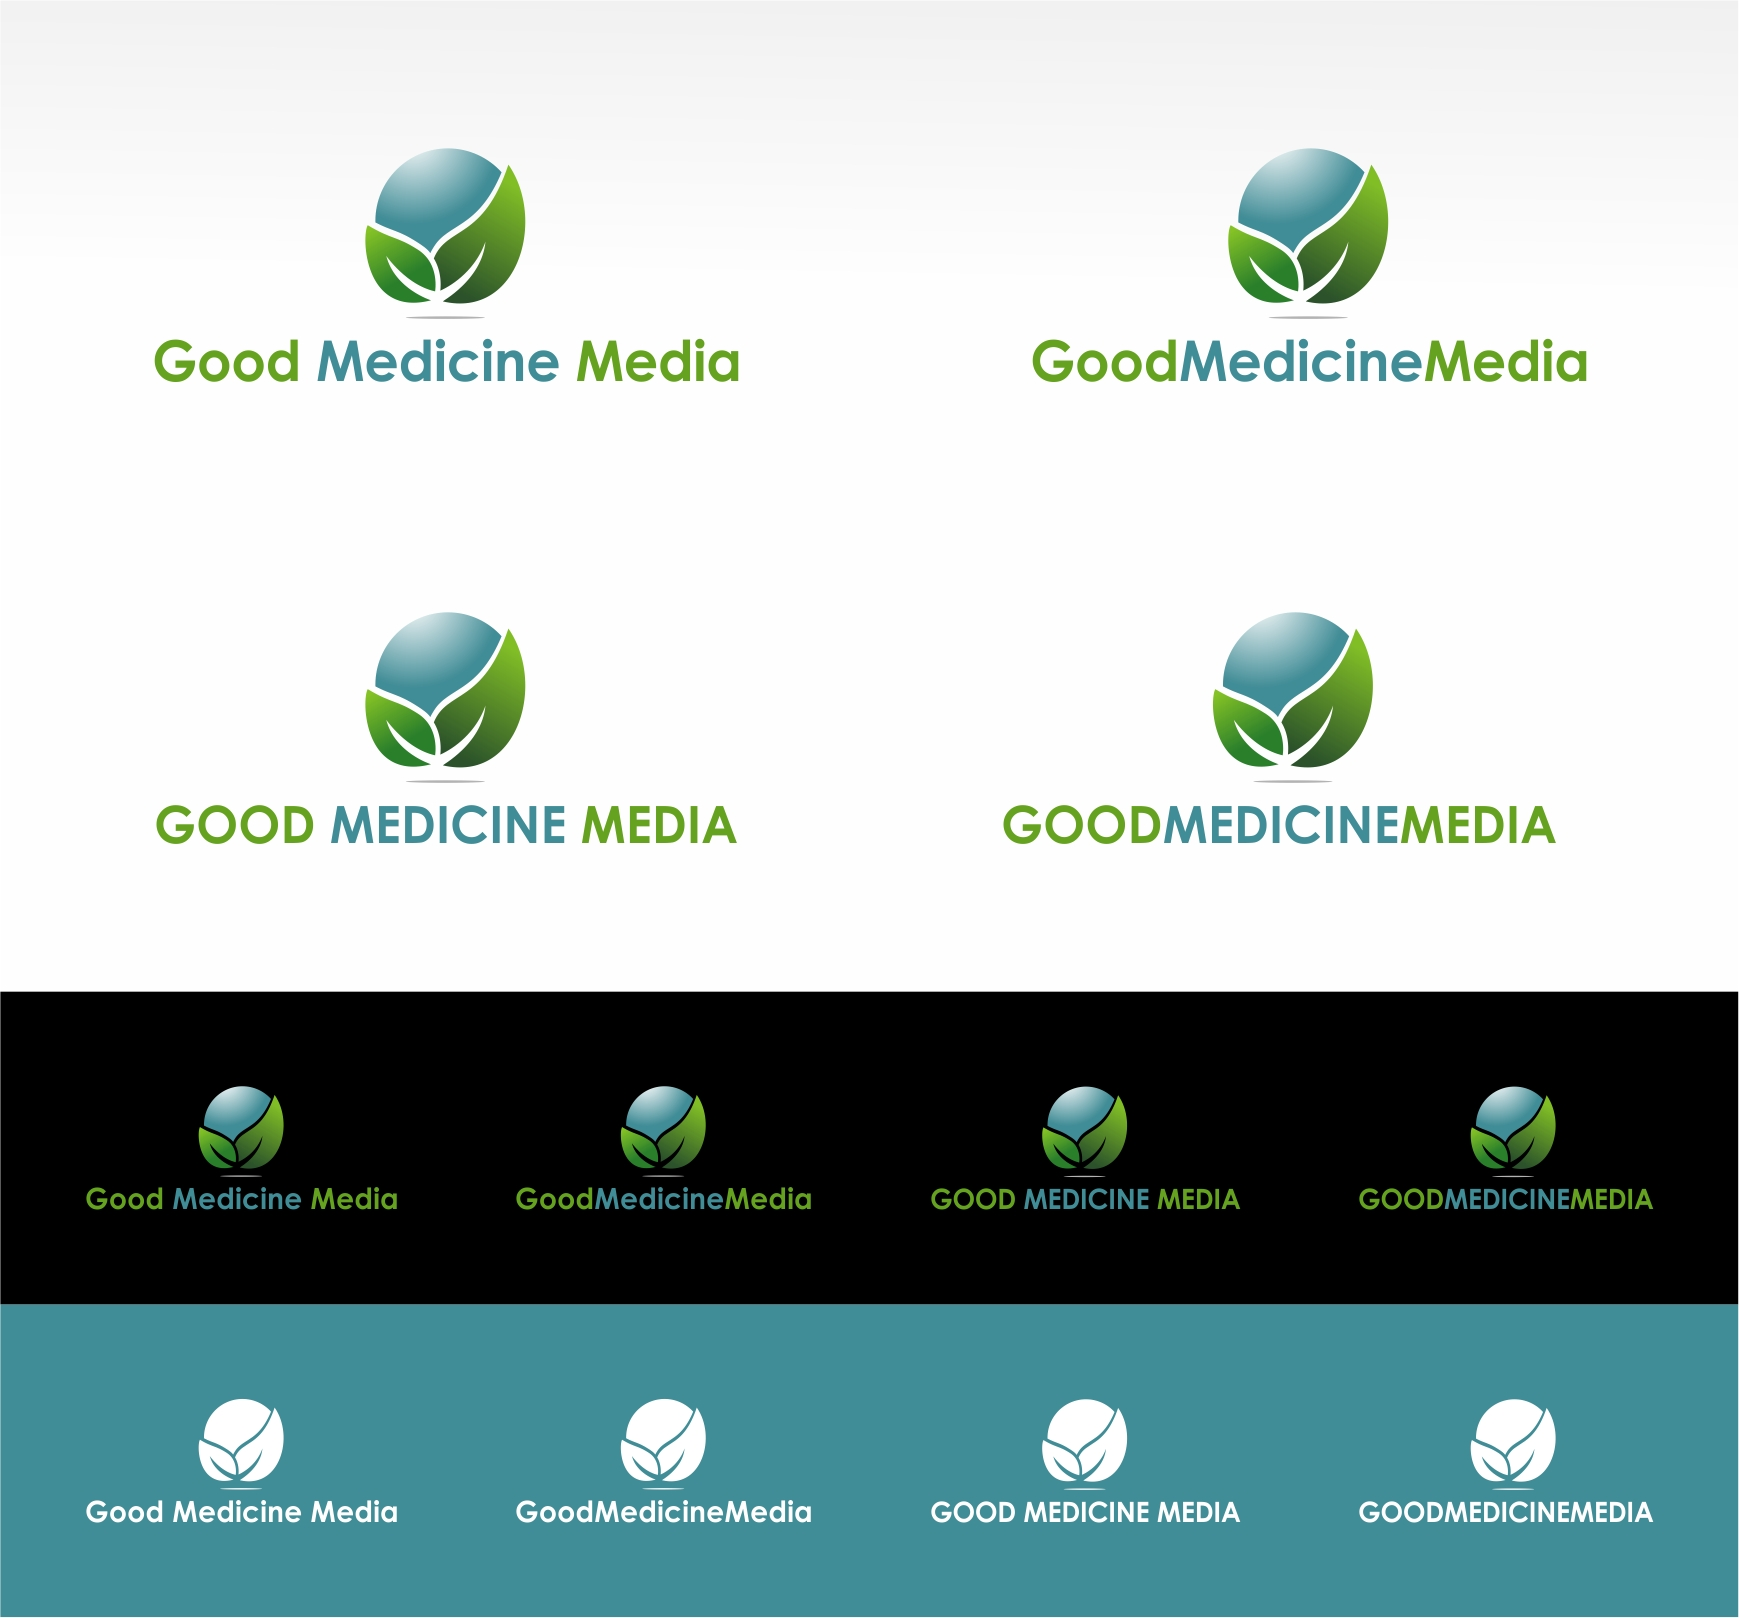 Logo Design by haidu - Entry No. 232 in the Logo Design Contest Good Medicine Media Logo Design.